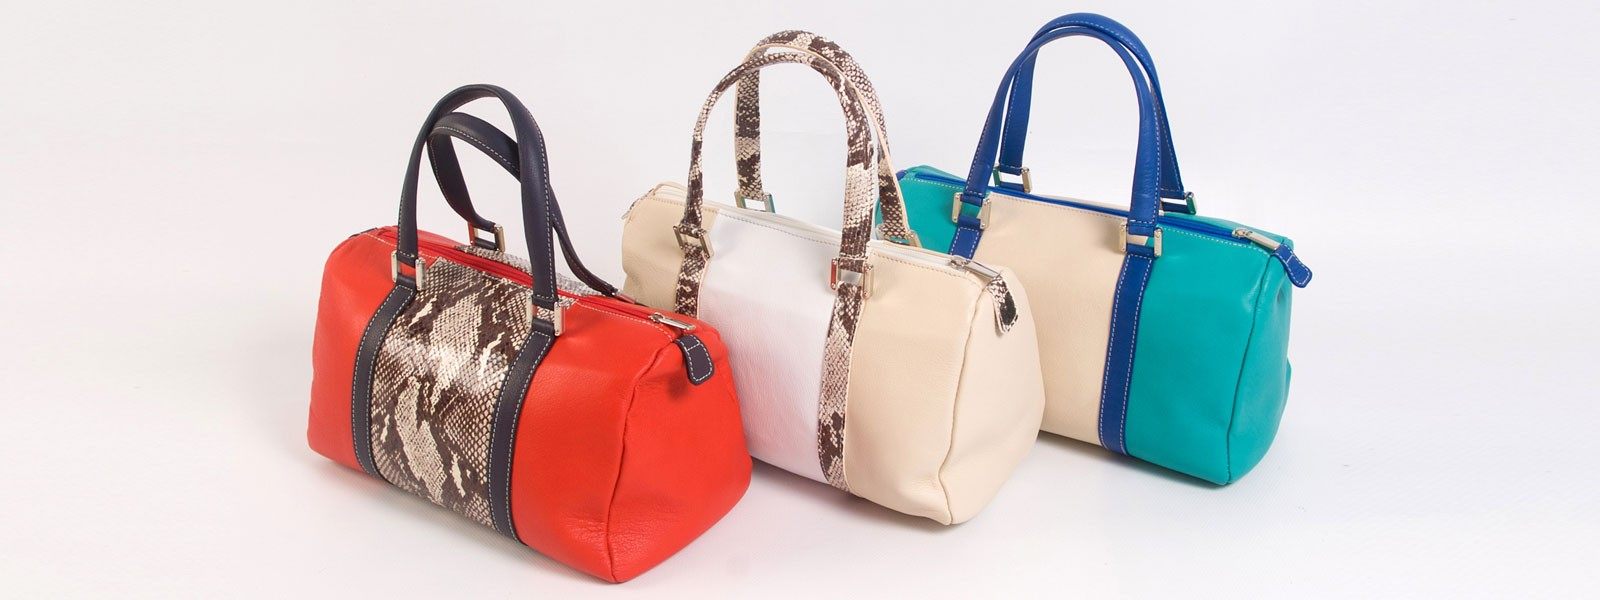 Cool Handbags Made In Spain